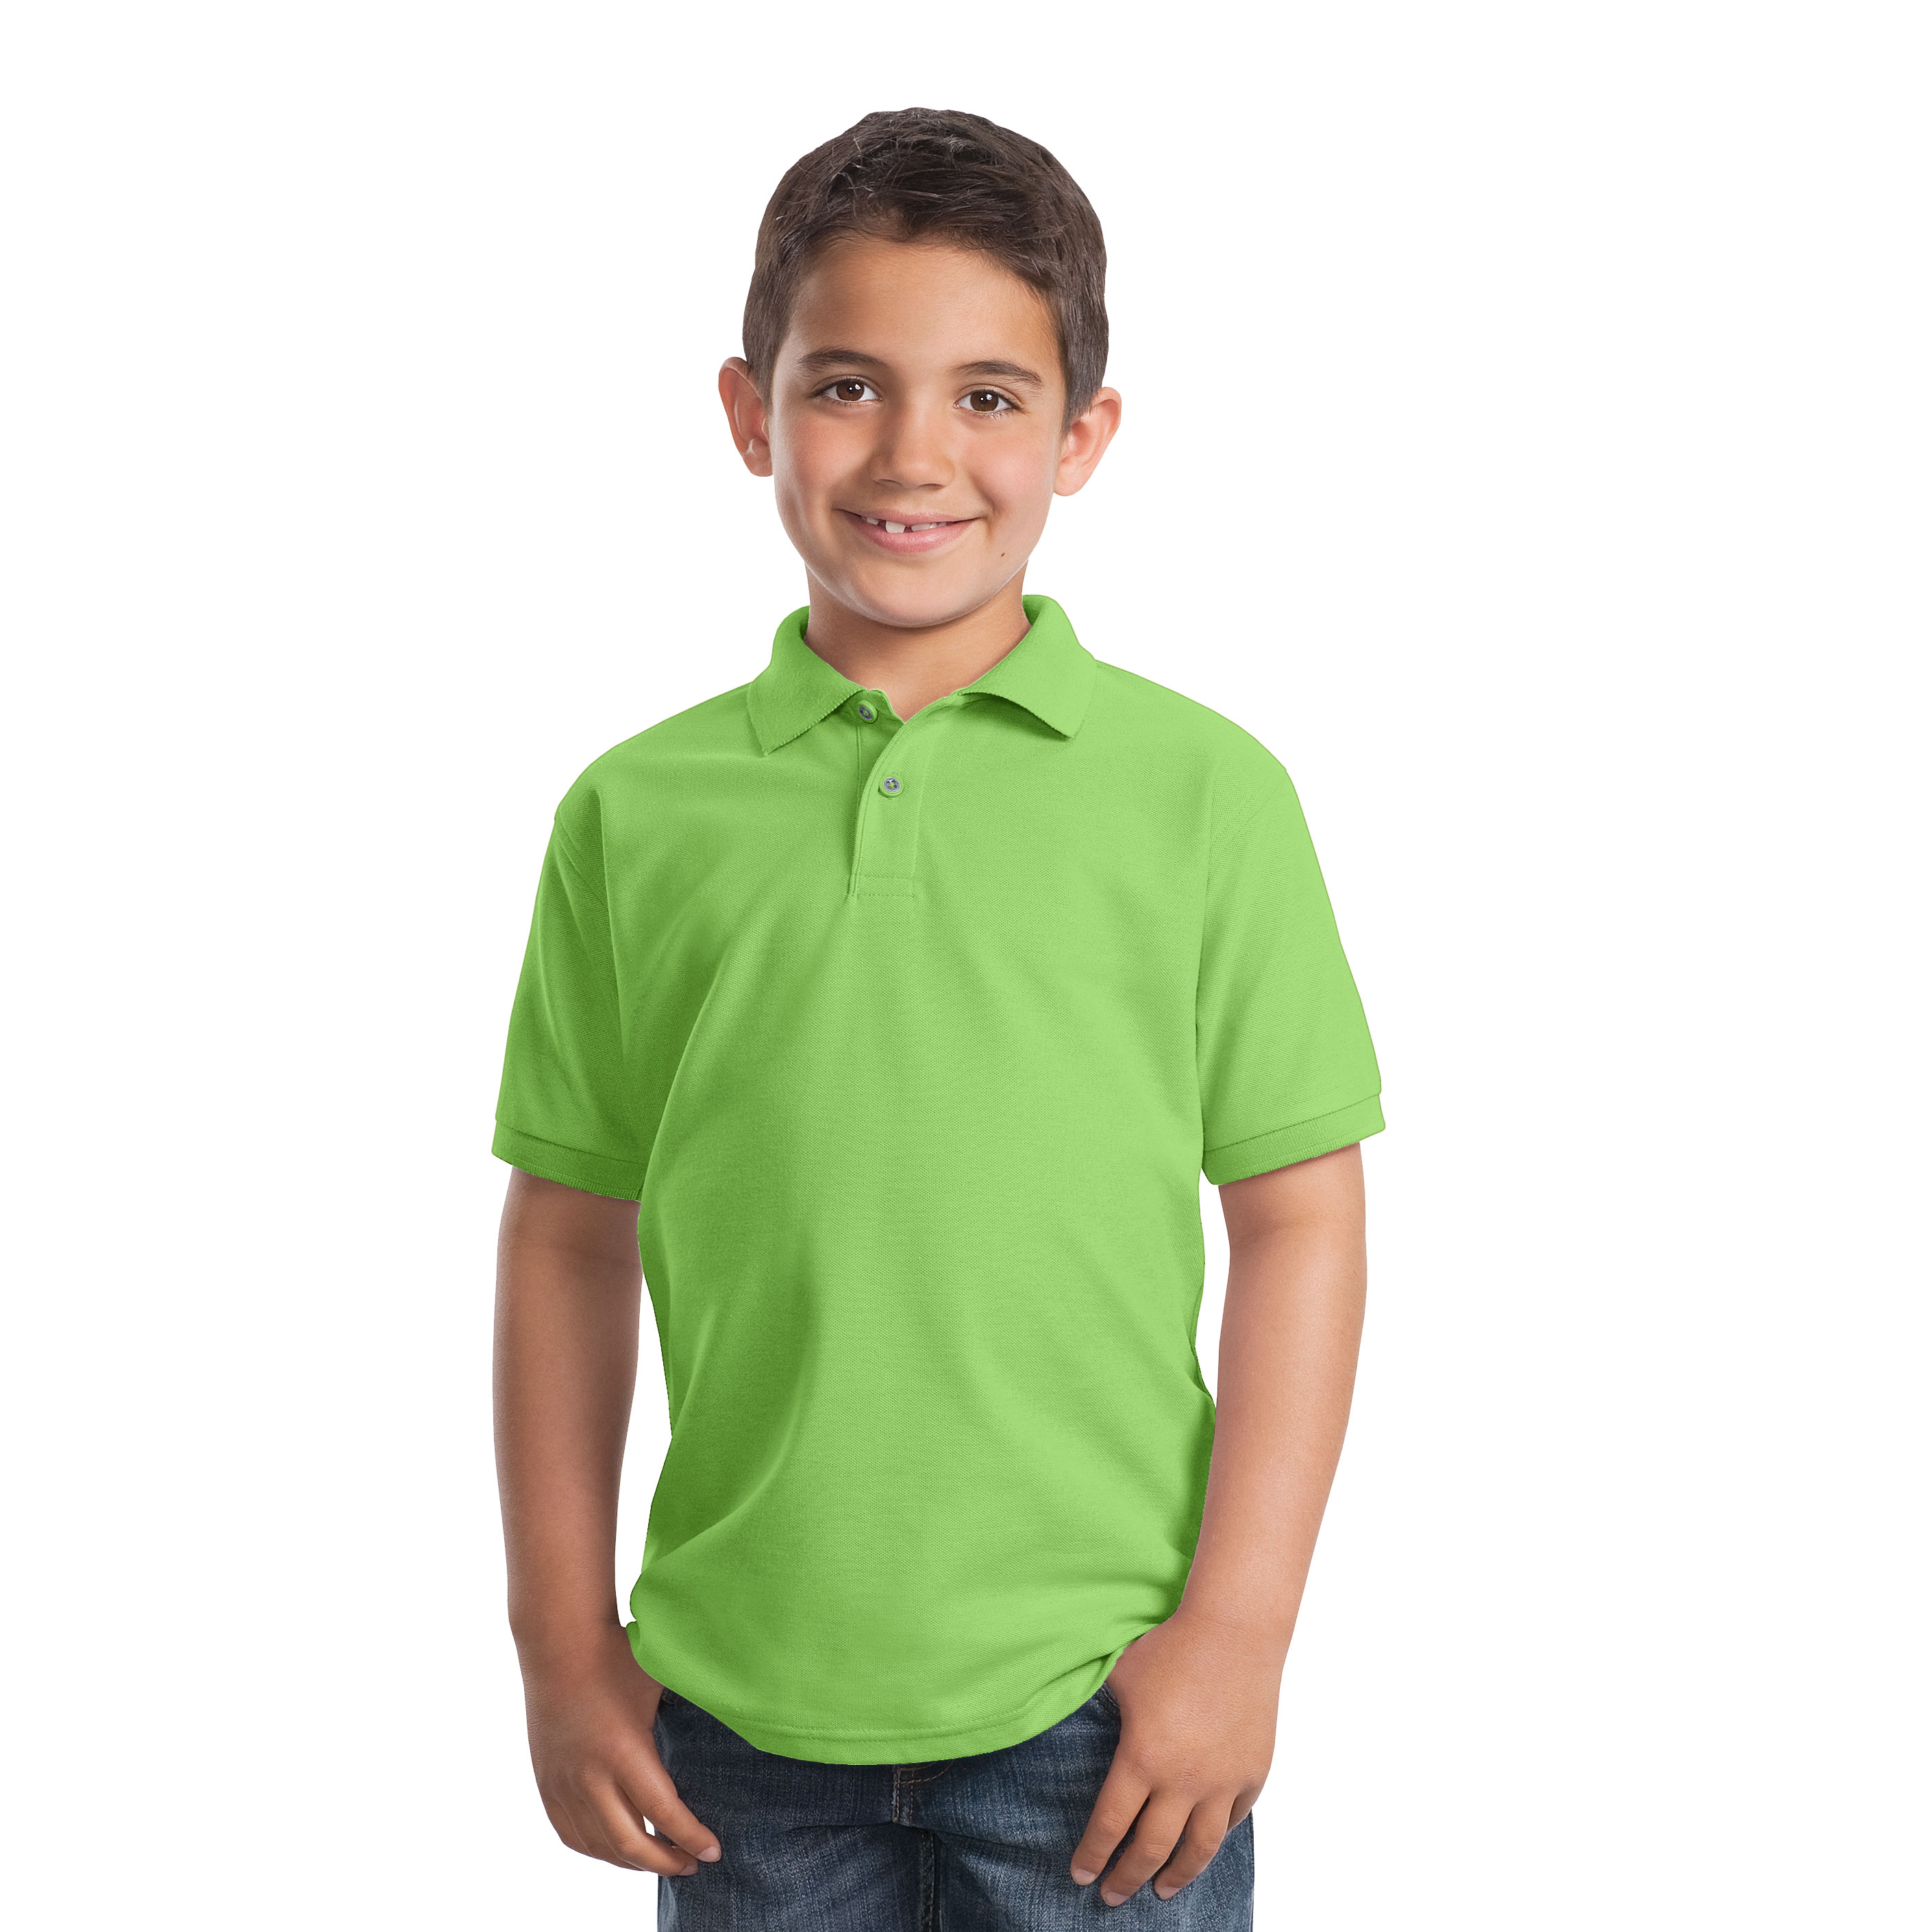 d975c6333 Youth Polo Silk Touch Shirt Port Authority® – Cherie4art Commercial ...